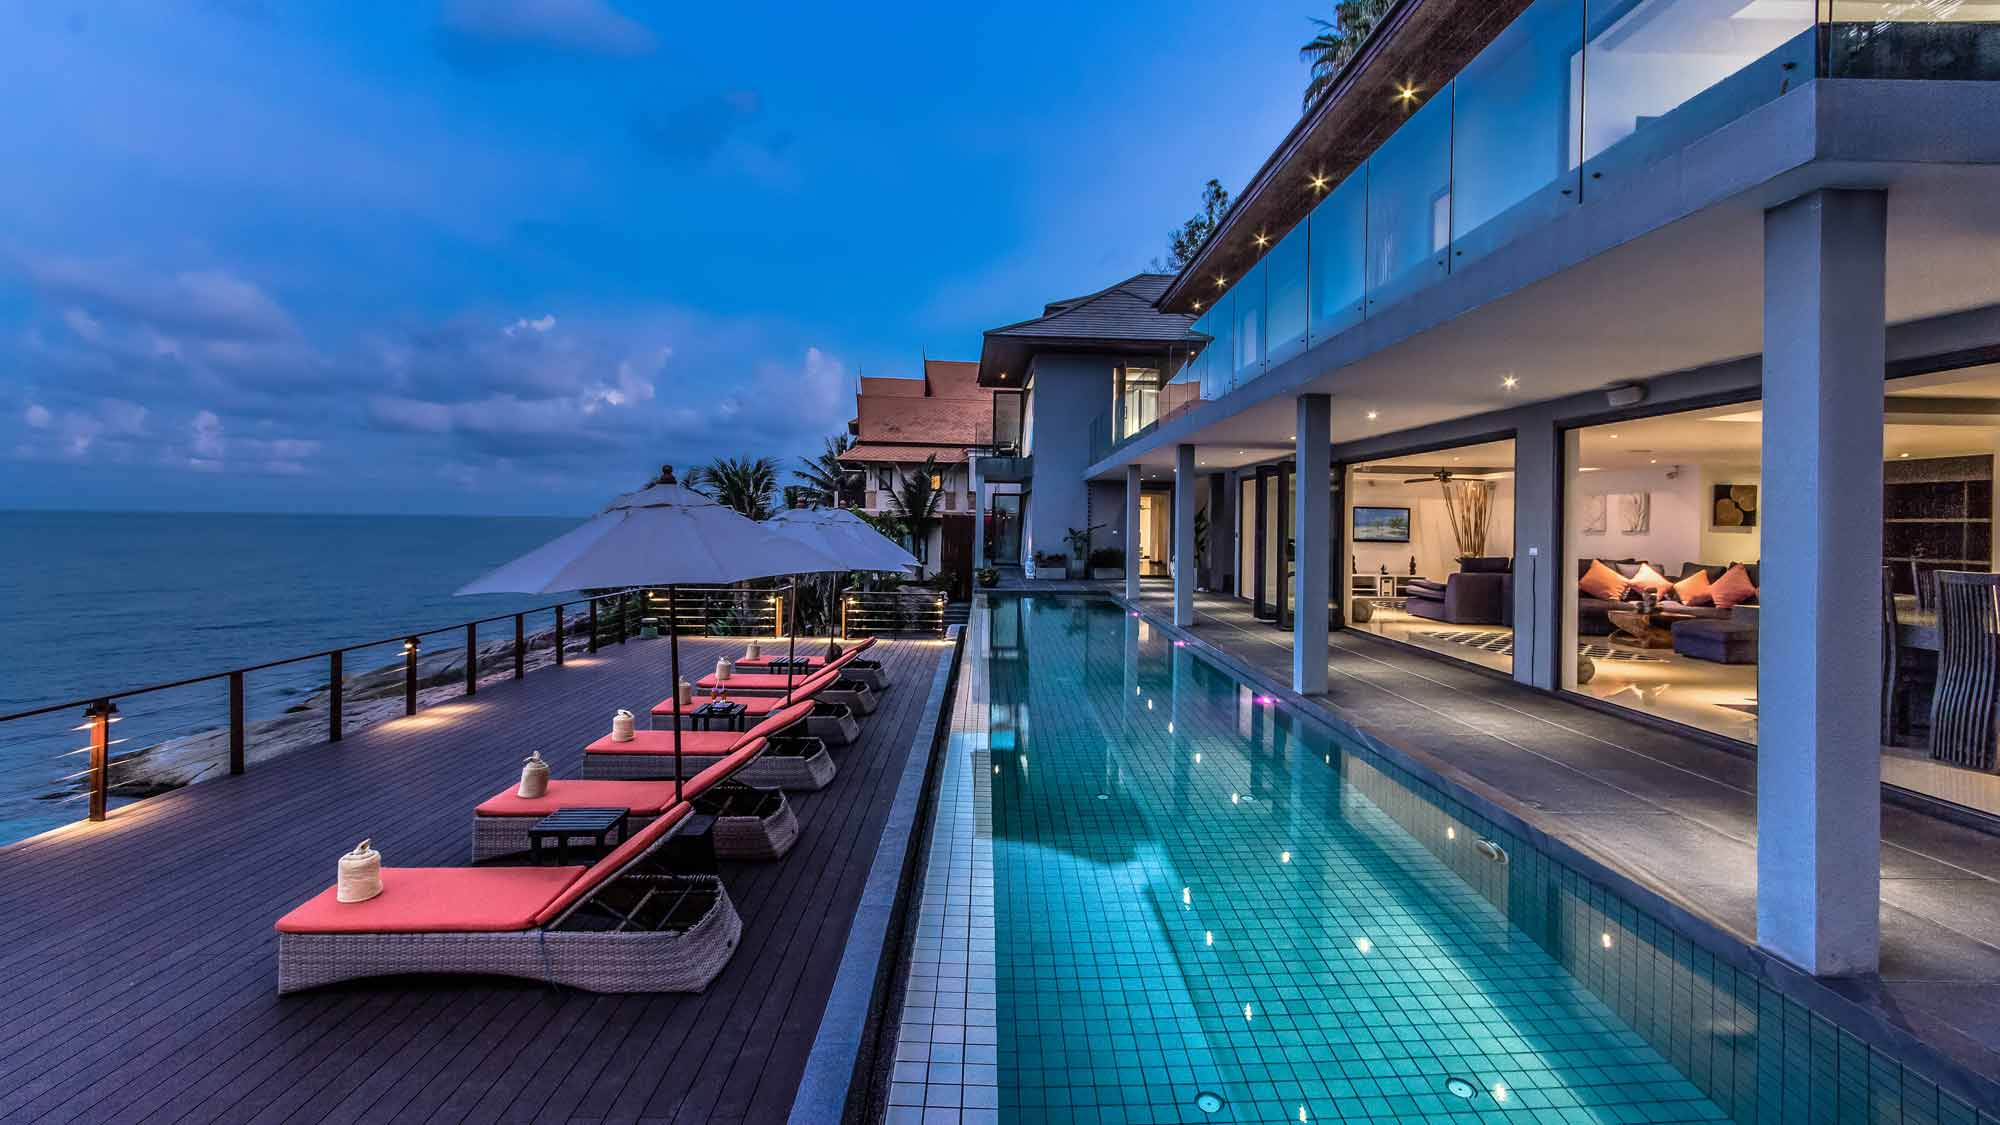 4 Bedroom Option Sea View Villa with Private Pool at Chaweng Koh Samui Thailand